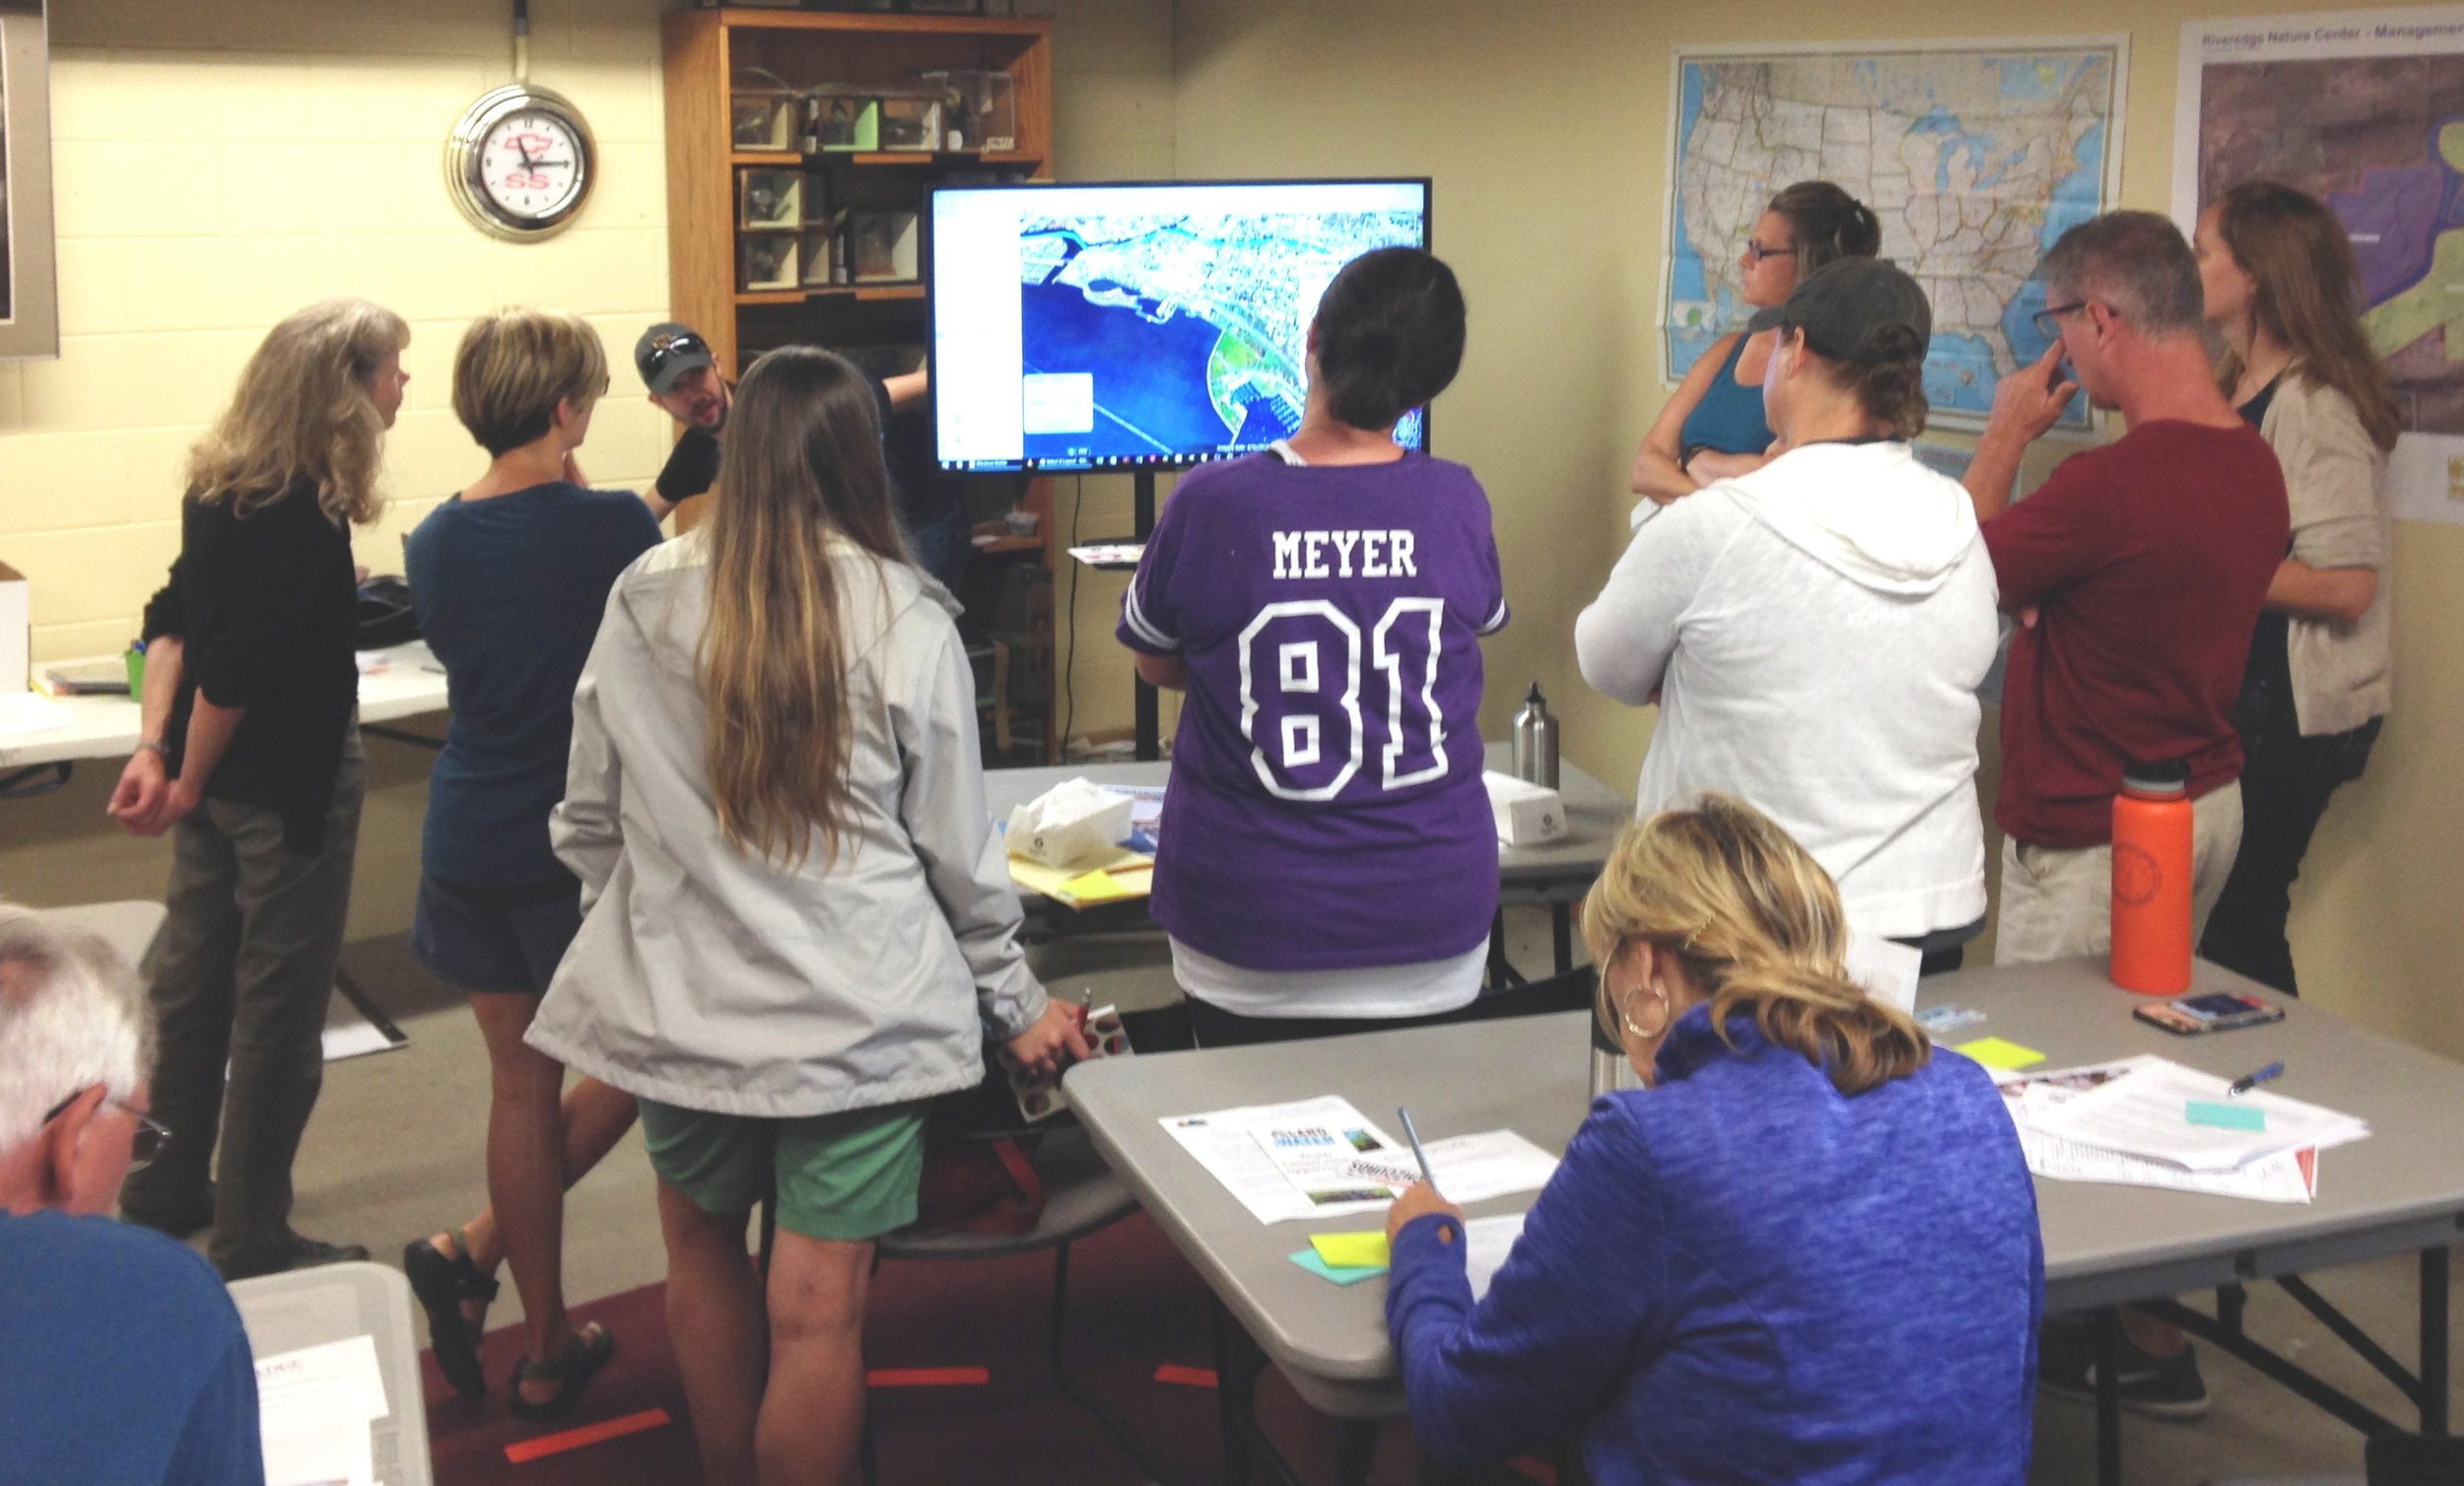 Showcasing the Milwaukee Community Map at a professional development session for educators focusing on Great Lakes sustainability at Riveredge Nature Center in August 2018.